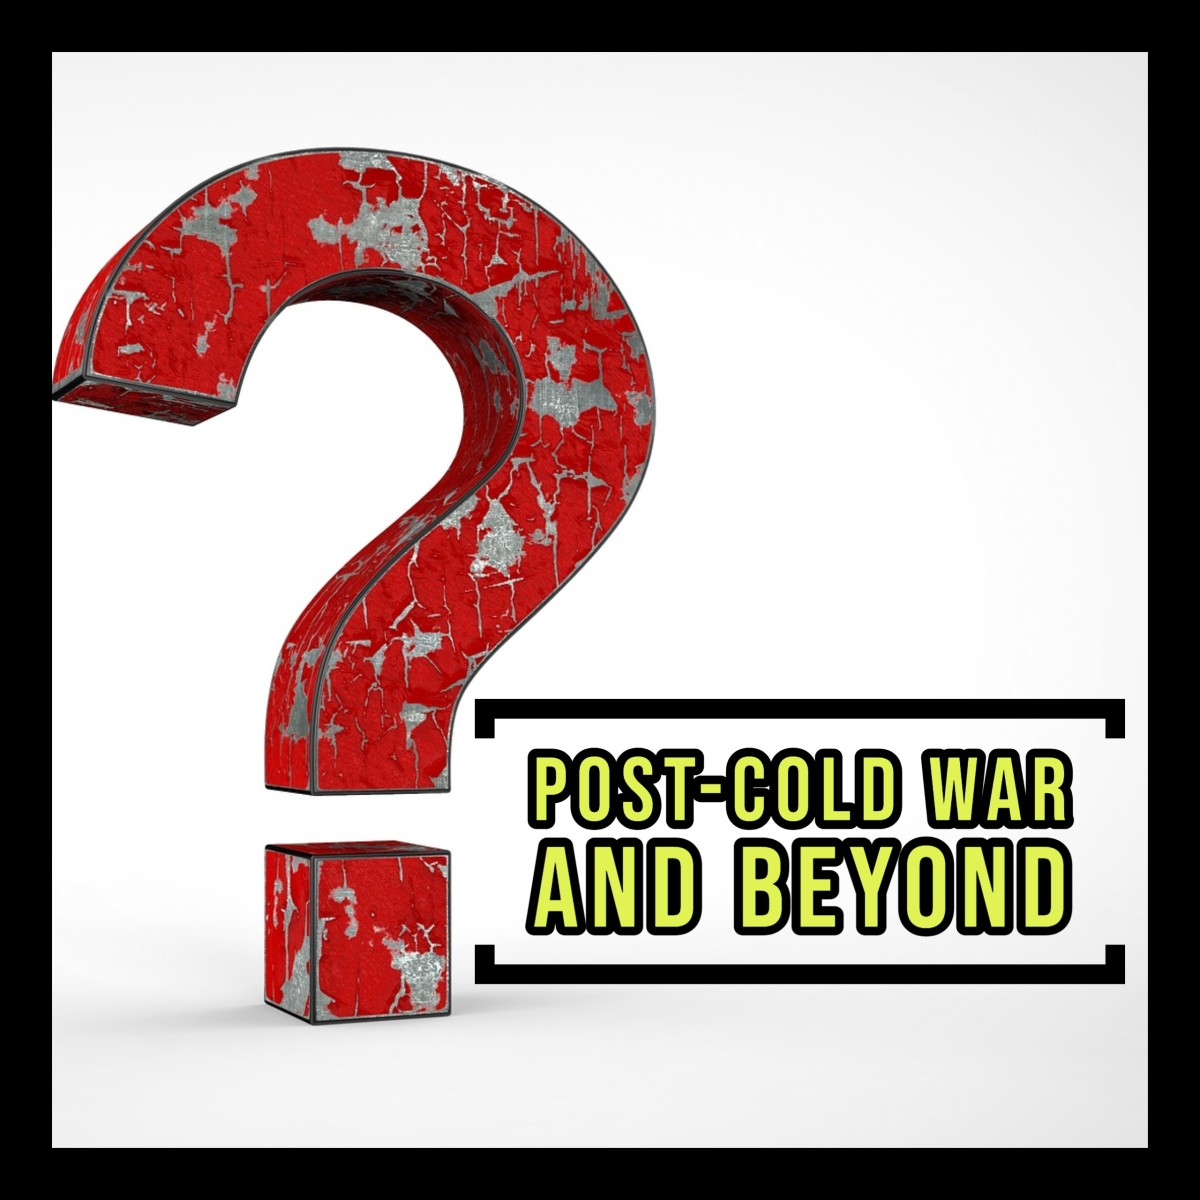 Research paper ideas for the post-cold war and Information Age.